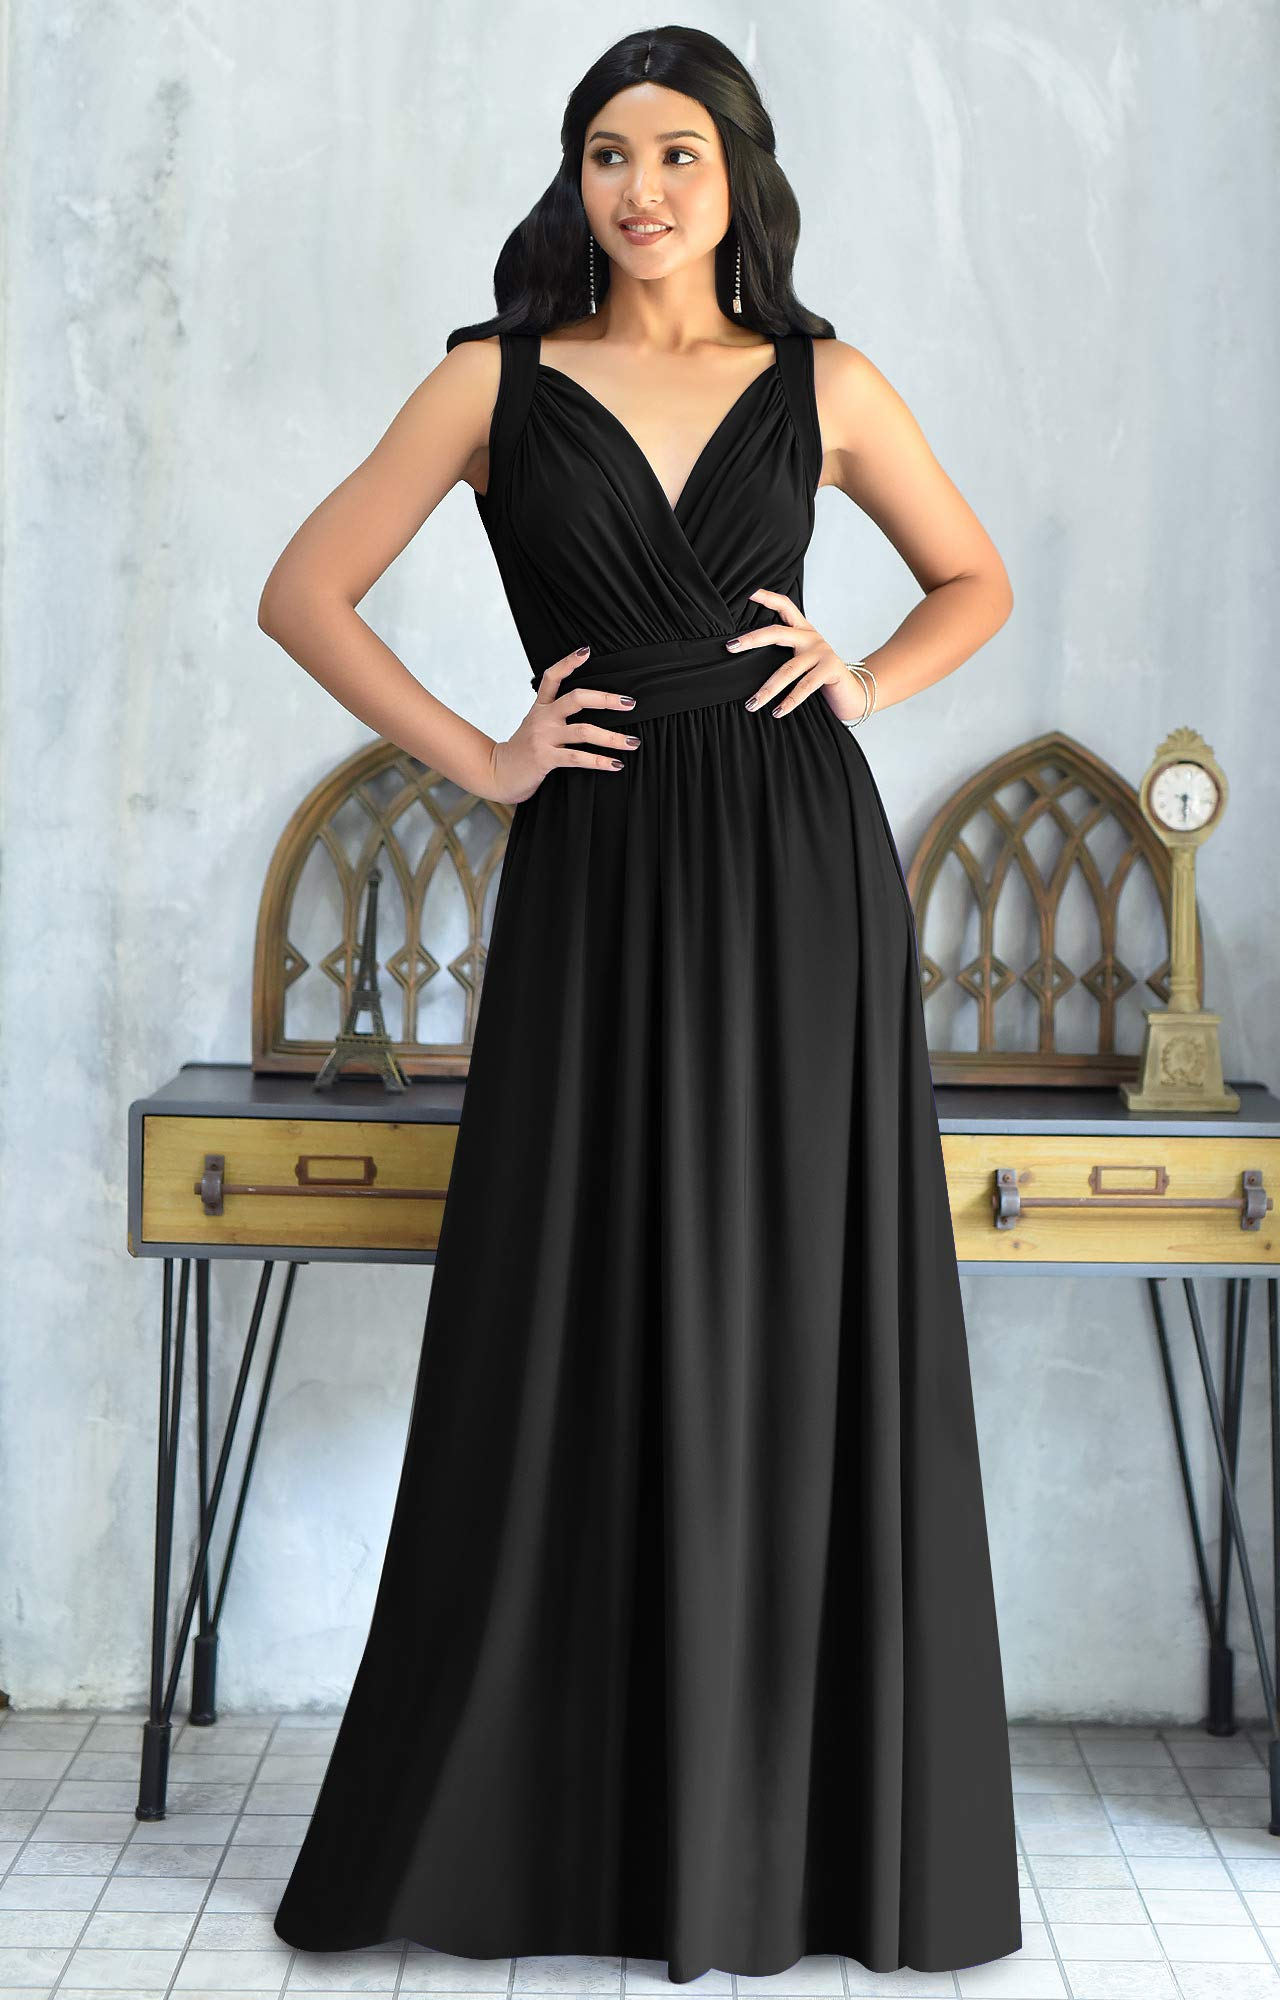 KOH KOH Womens Long Sleeveless Flowy Bridesmaids Cocktail Party Evening Formal Sexy Summer Wedding Guest Ball Prom Gown Gowns Maxi Dress Dresses, Black L 12-14 by KOH KOH (Image #2)